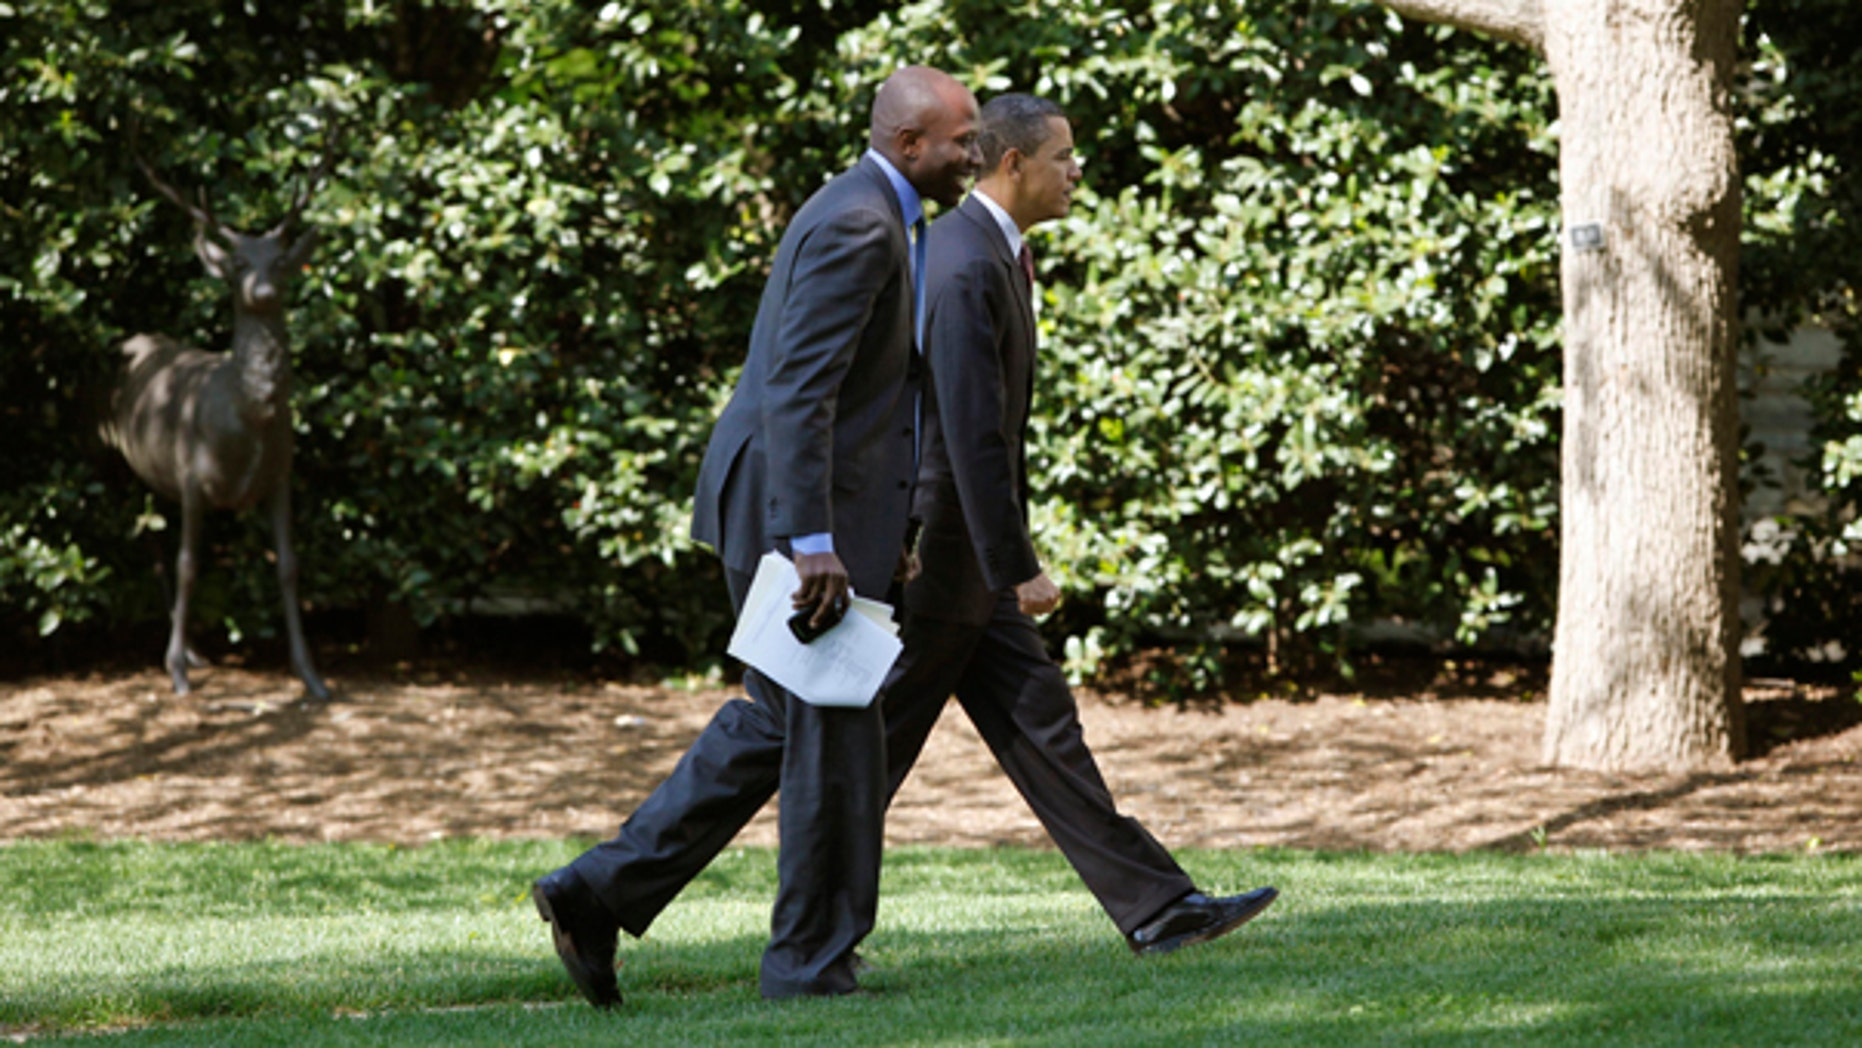 President Obama walks with aide Reggie Love, to the Oval Office of the White House in Washington, Friday, April 16, 2010. (AP)